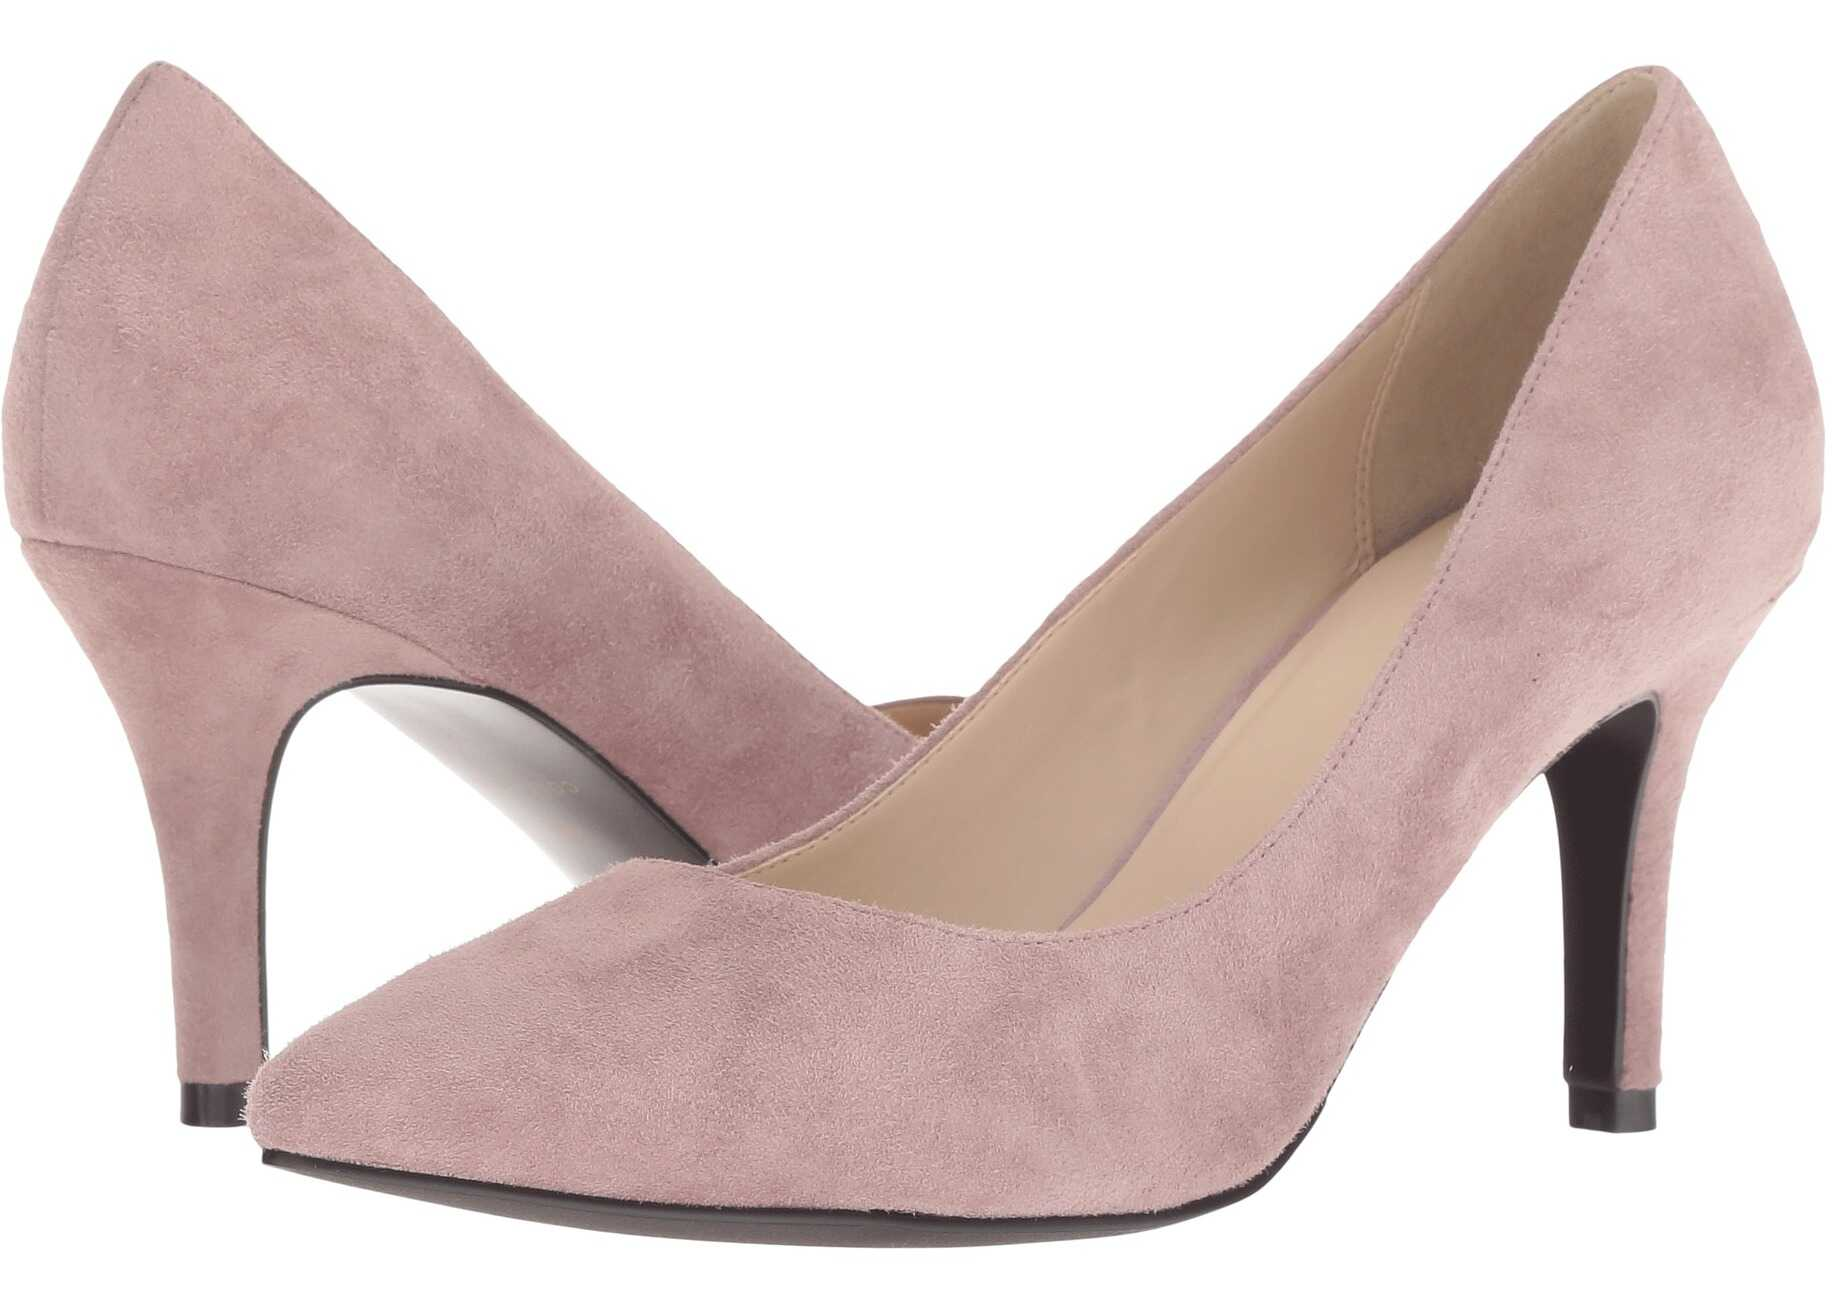 Cole Haan Juliana Pump 75mm Twilight Mauve Suede